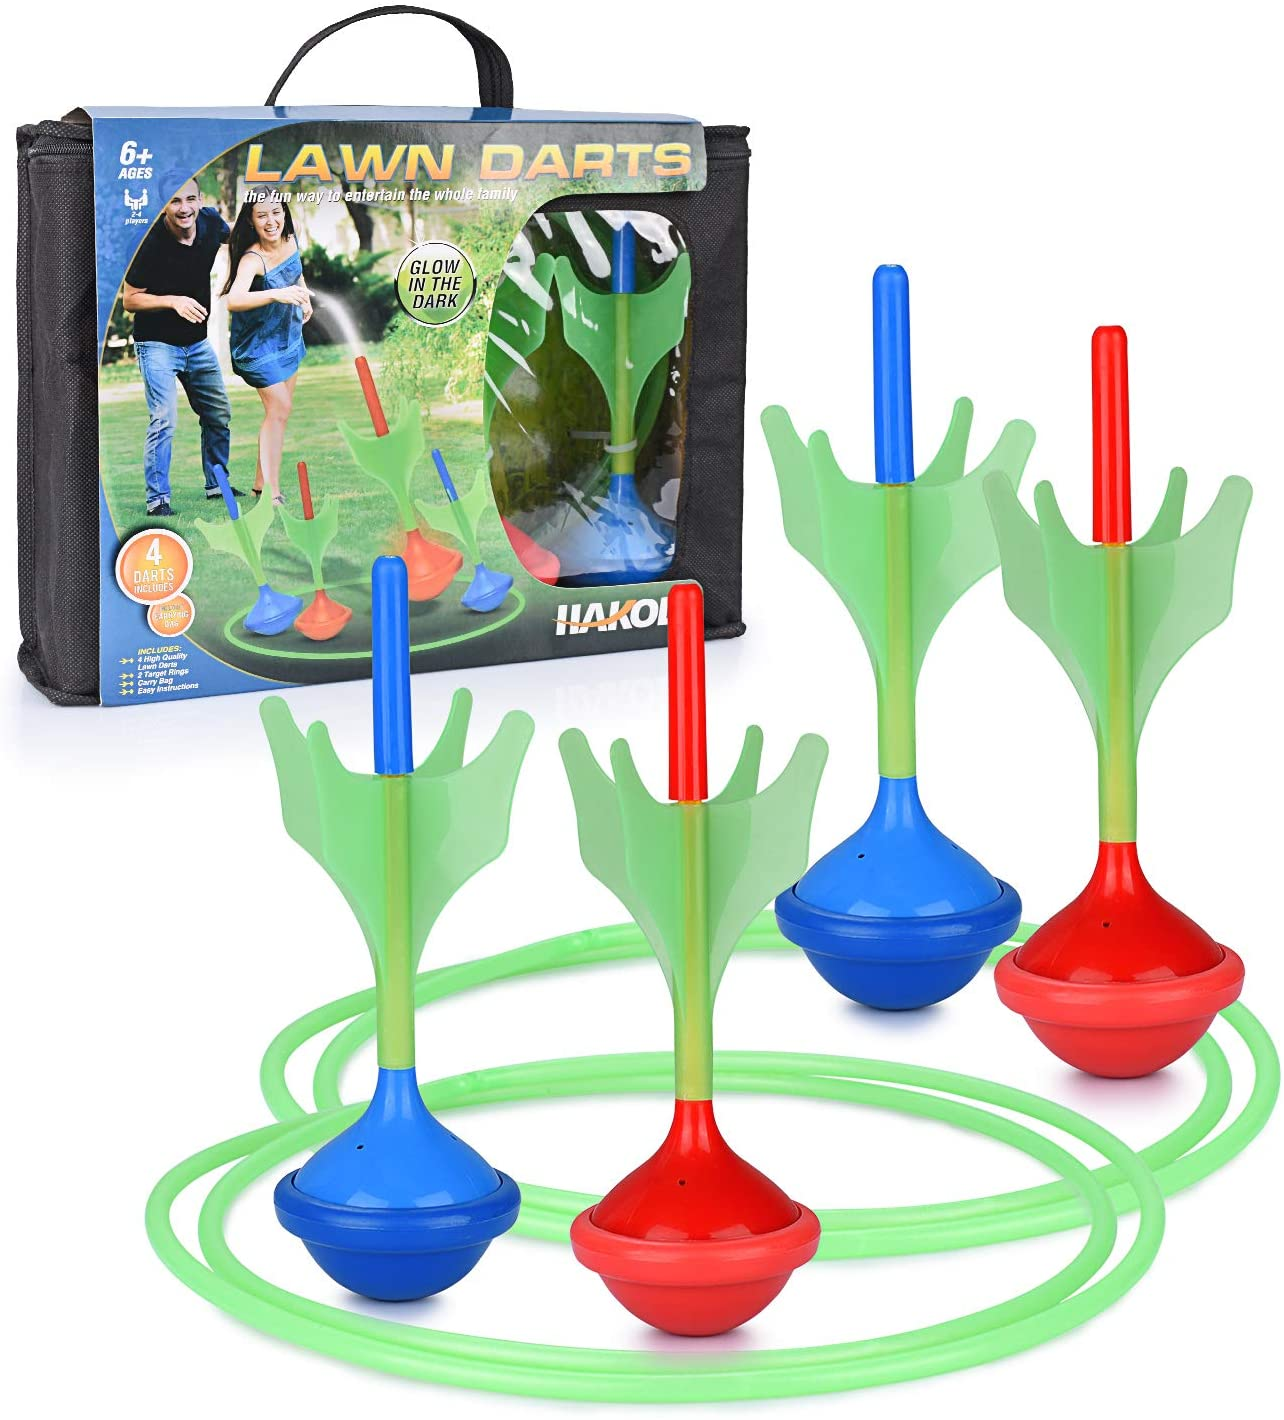 Lawn Darts Game - Glow in The Dark, Outdoor Backyard Toy for Kids & Adults